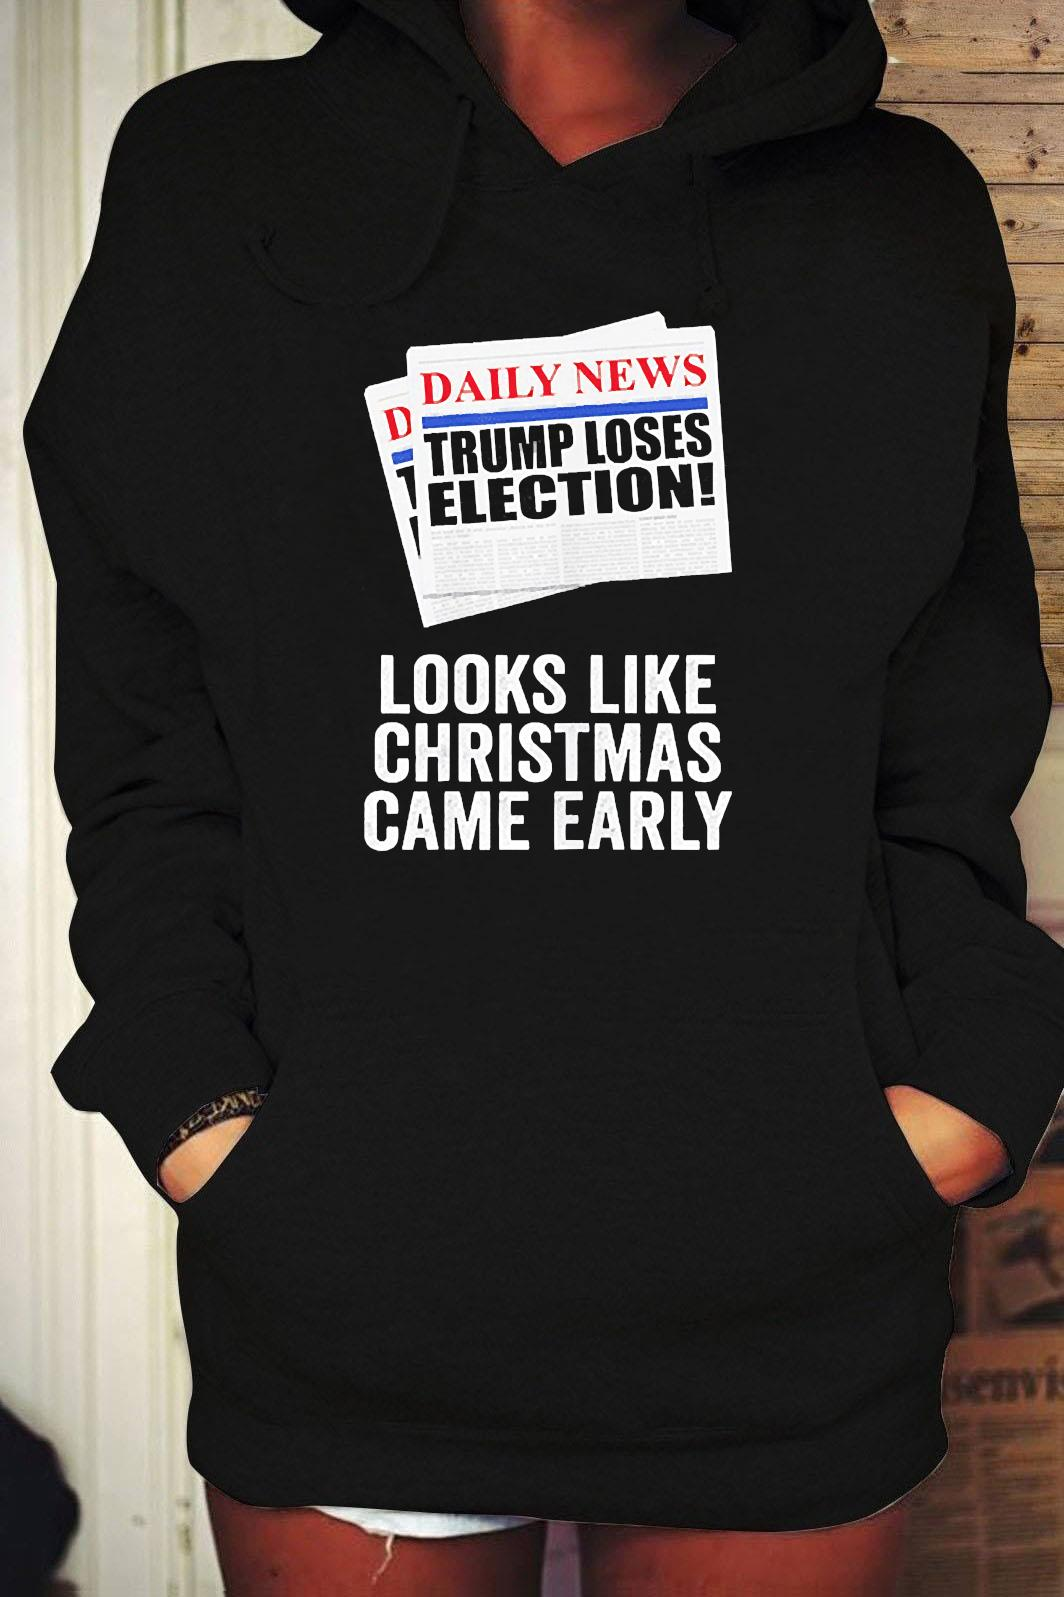 Trump Loses Election Looks Like Christmas Came Early 2020 Shirt Hoodie